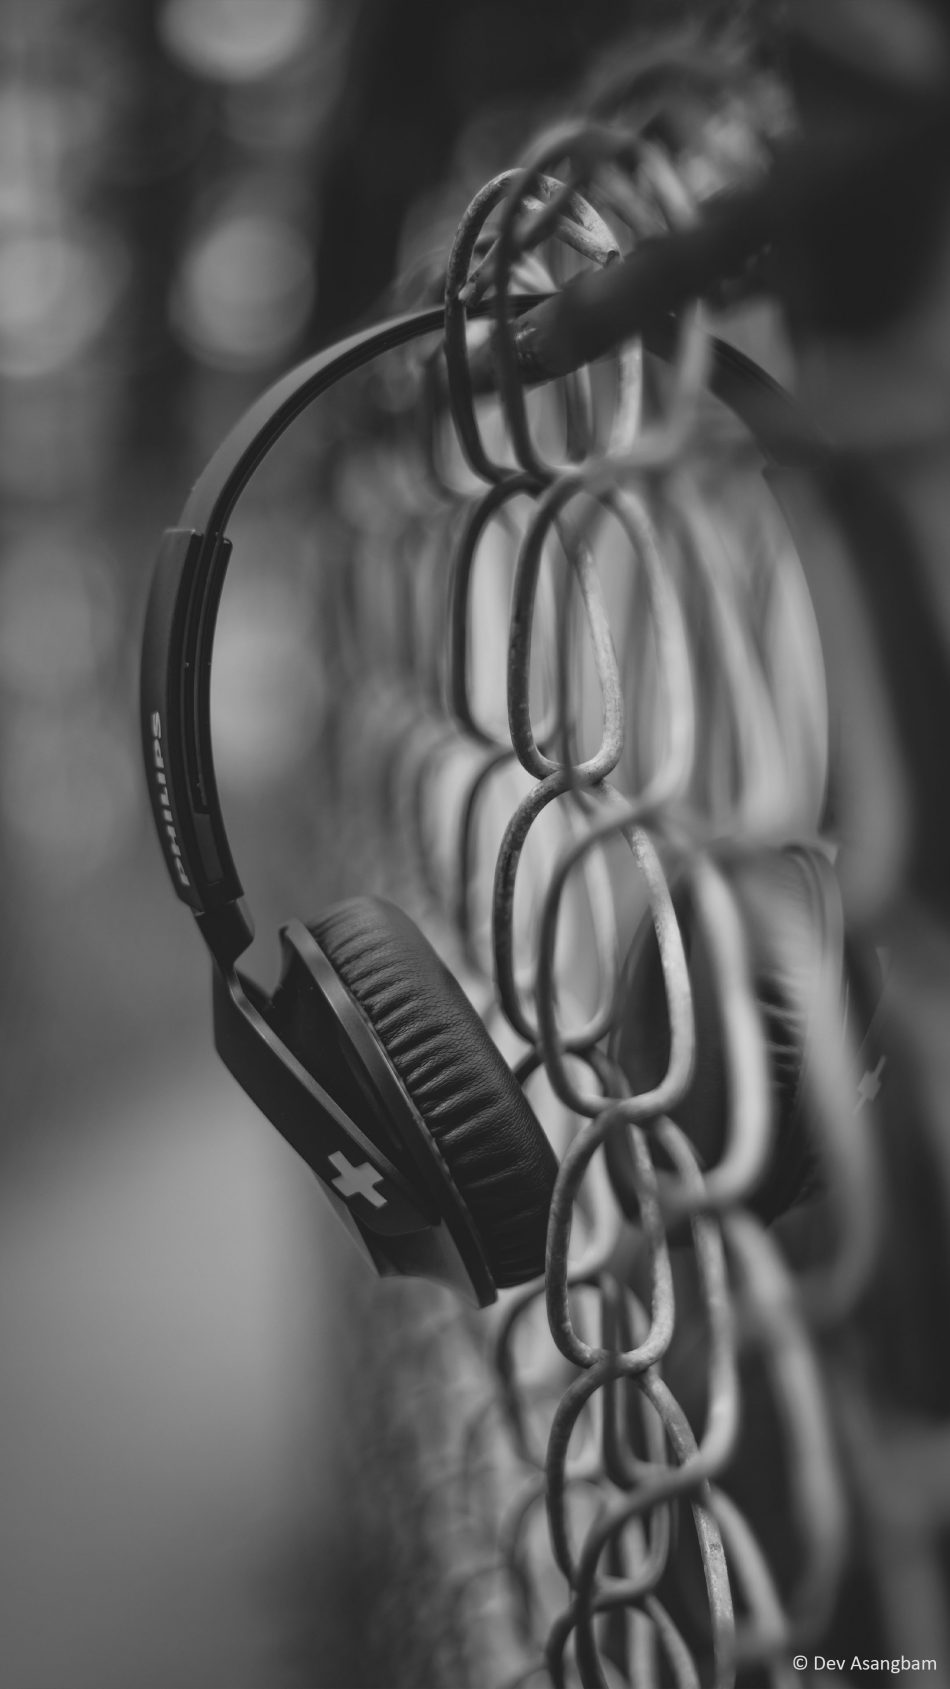 Music Headphone Black White 4k Ultra Hd Mobile Wallpaper